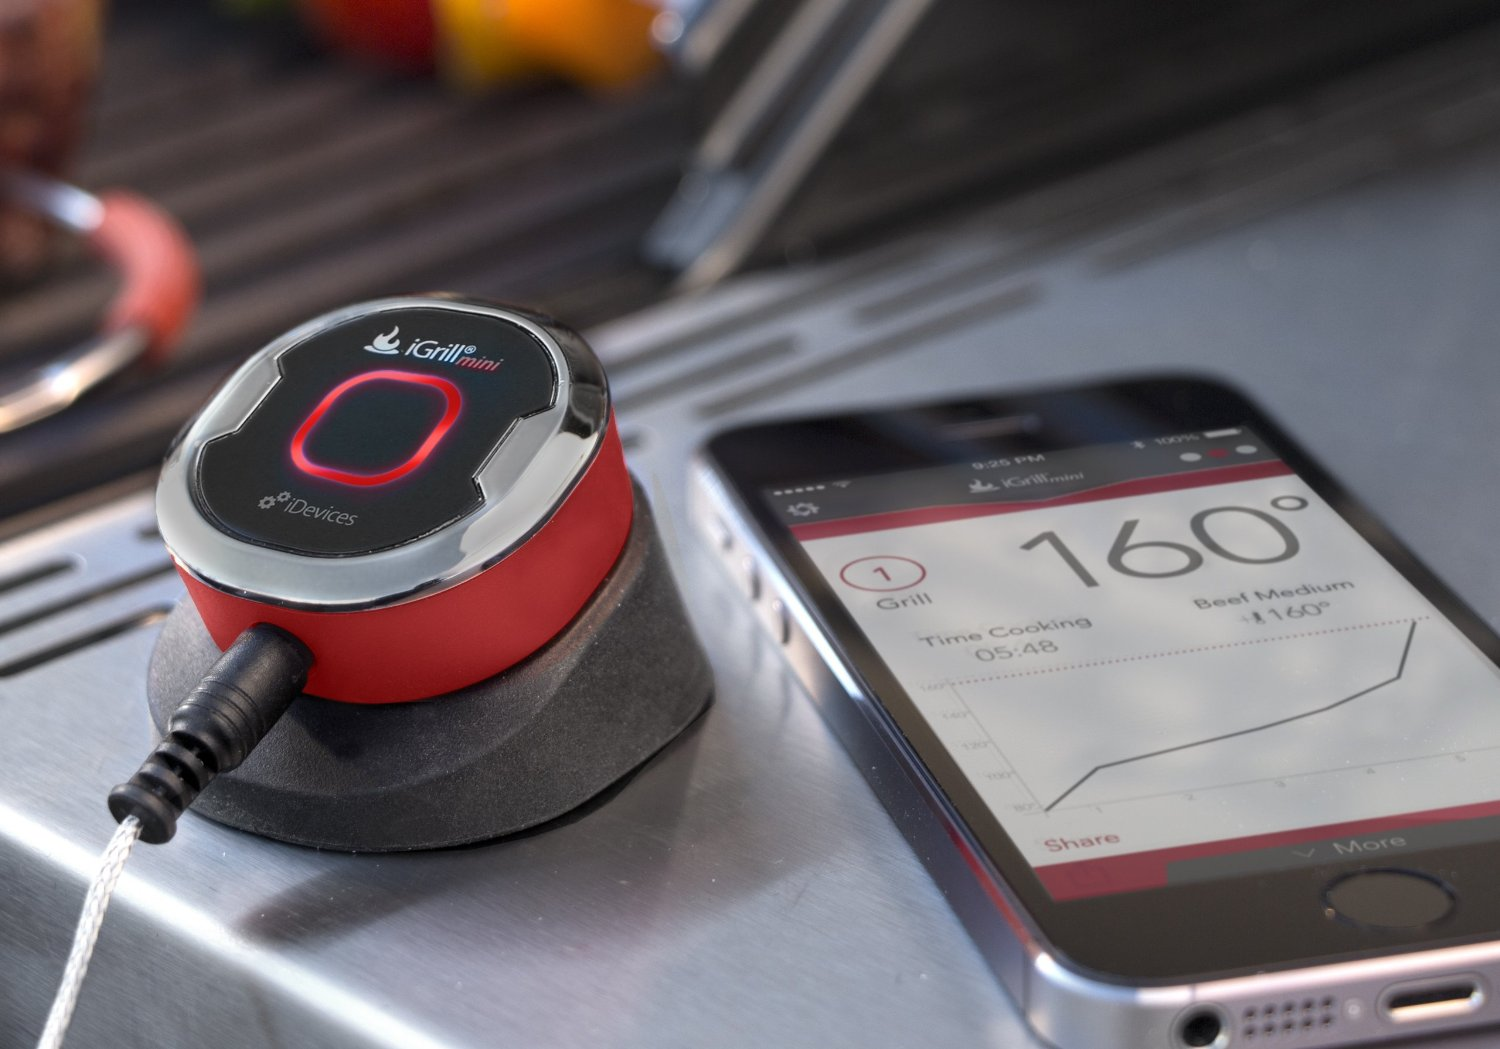 With the iGrill mini thermometer ($40), Dad can step away from the grill and spend more time with friends and family. From up to 150 feet away, he'll know when the meats are ready because the device will send an alert to his phone.